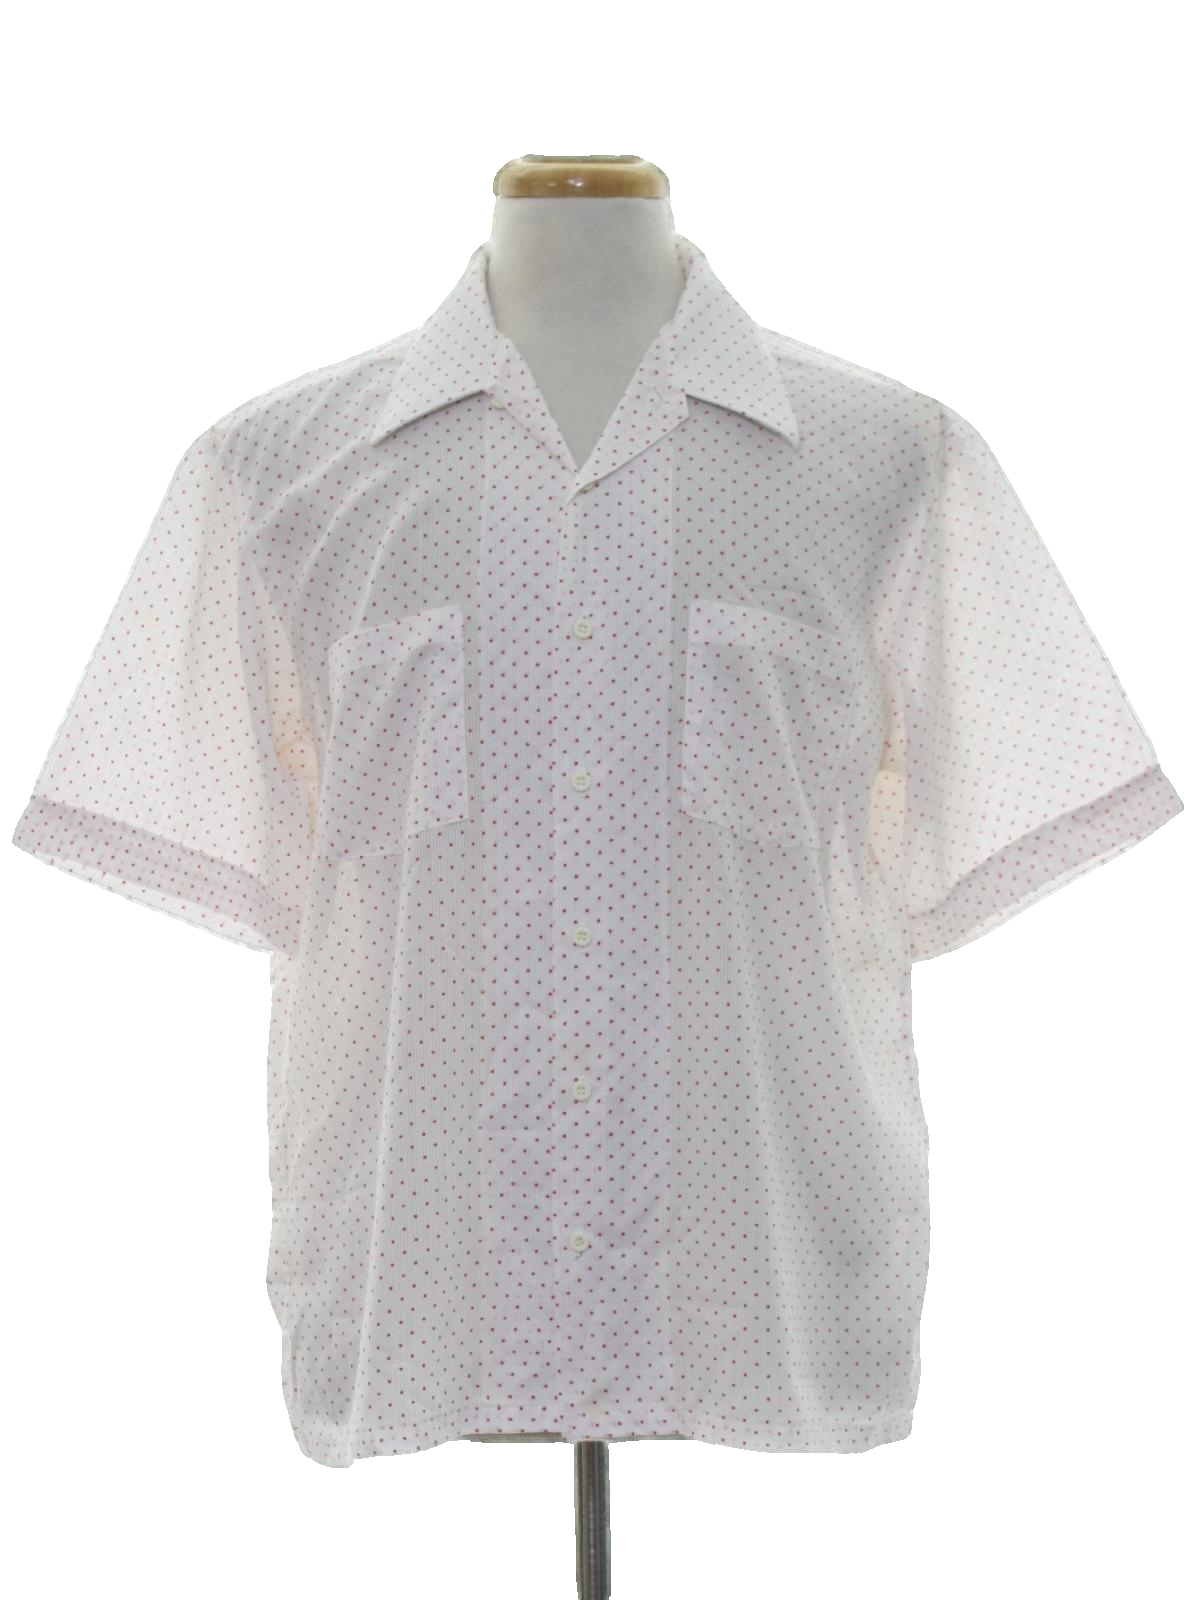 971a35d99 70s Vintage Diamonds Shirt  80s -Diamonds- Mens white and red rayon ...